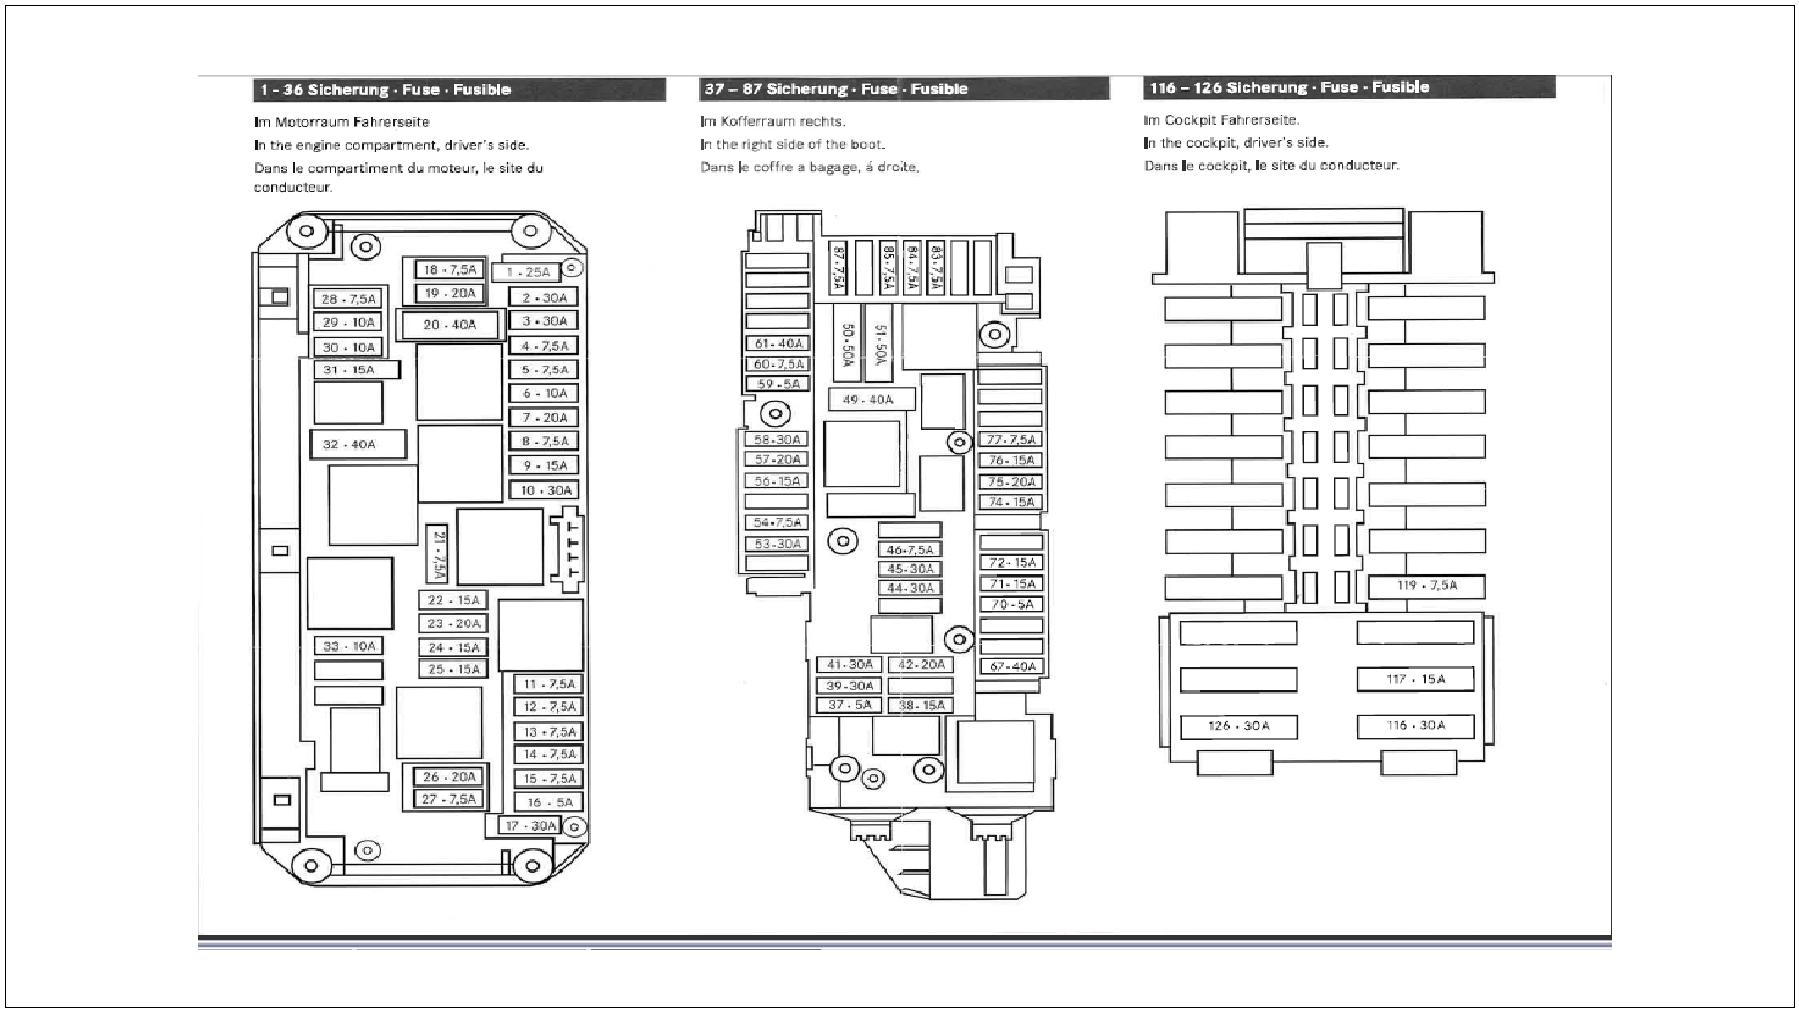 Mercedes Ml350 Fuse Box Diagram Wiring Library